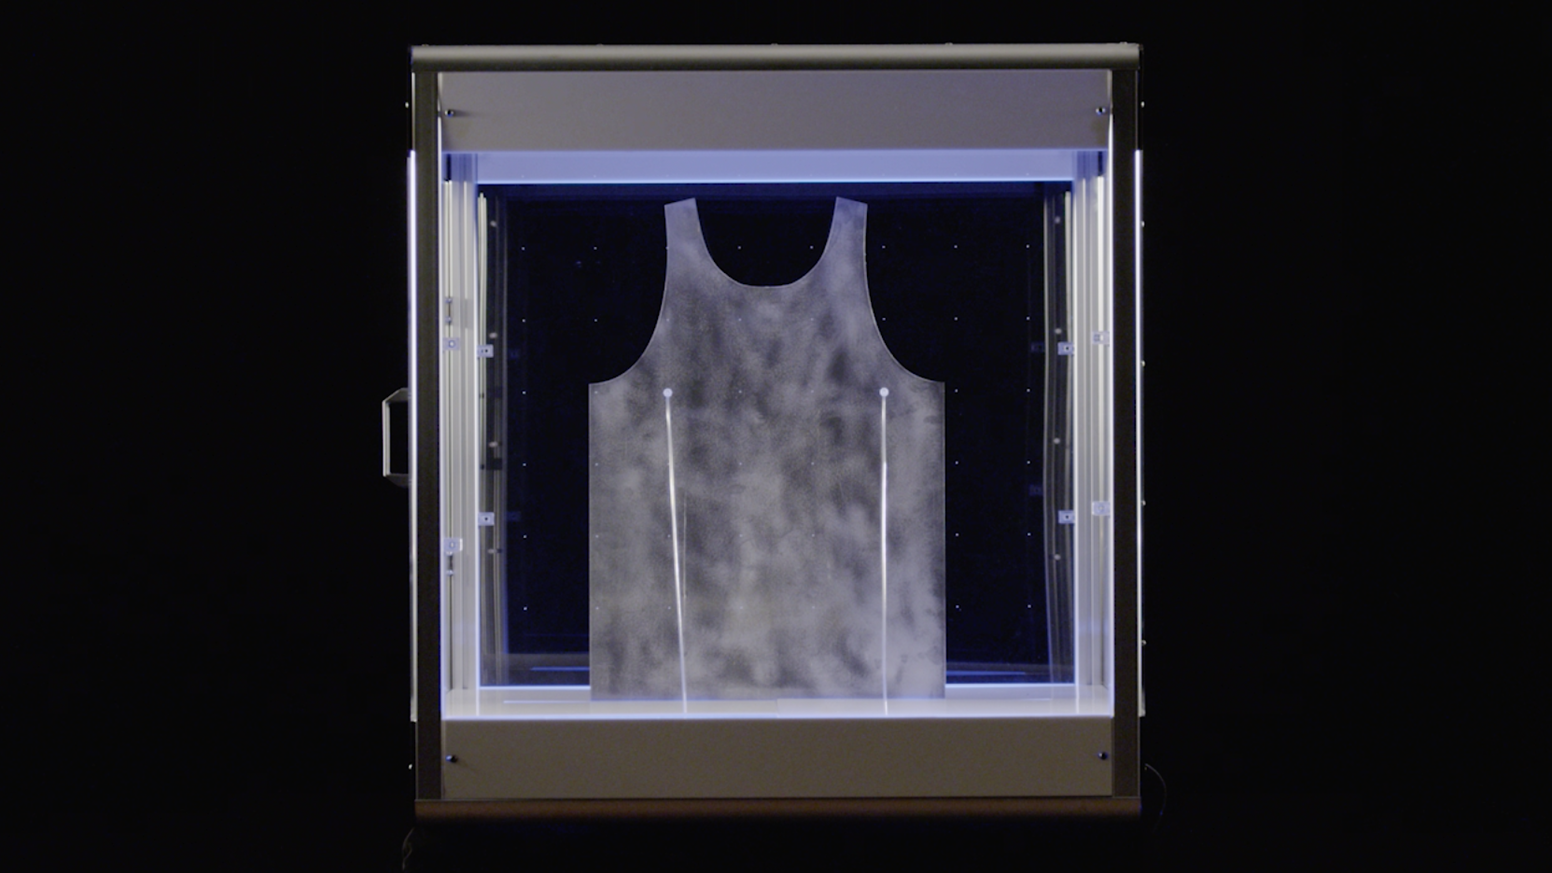 Electroloom The Worlds First 3d Fabric Printer By Camt Launching Firstever For Printed Circuit Board Design And Create Seamless Ready To Wear Garments Based On Custom Geometries